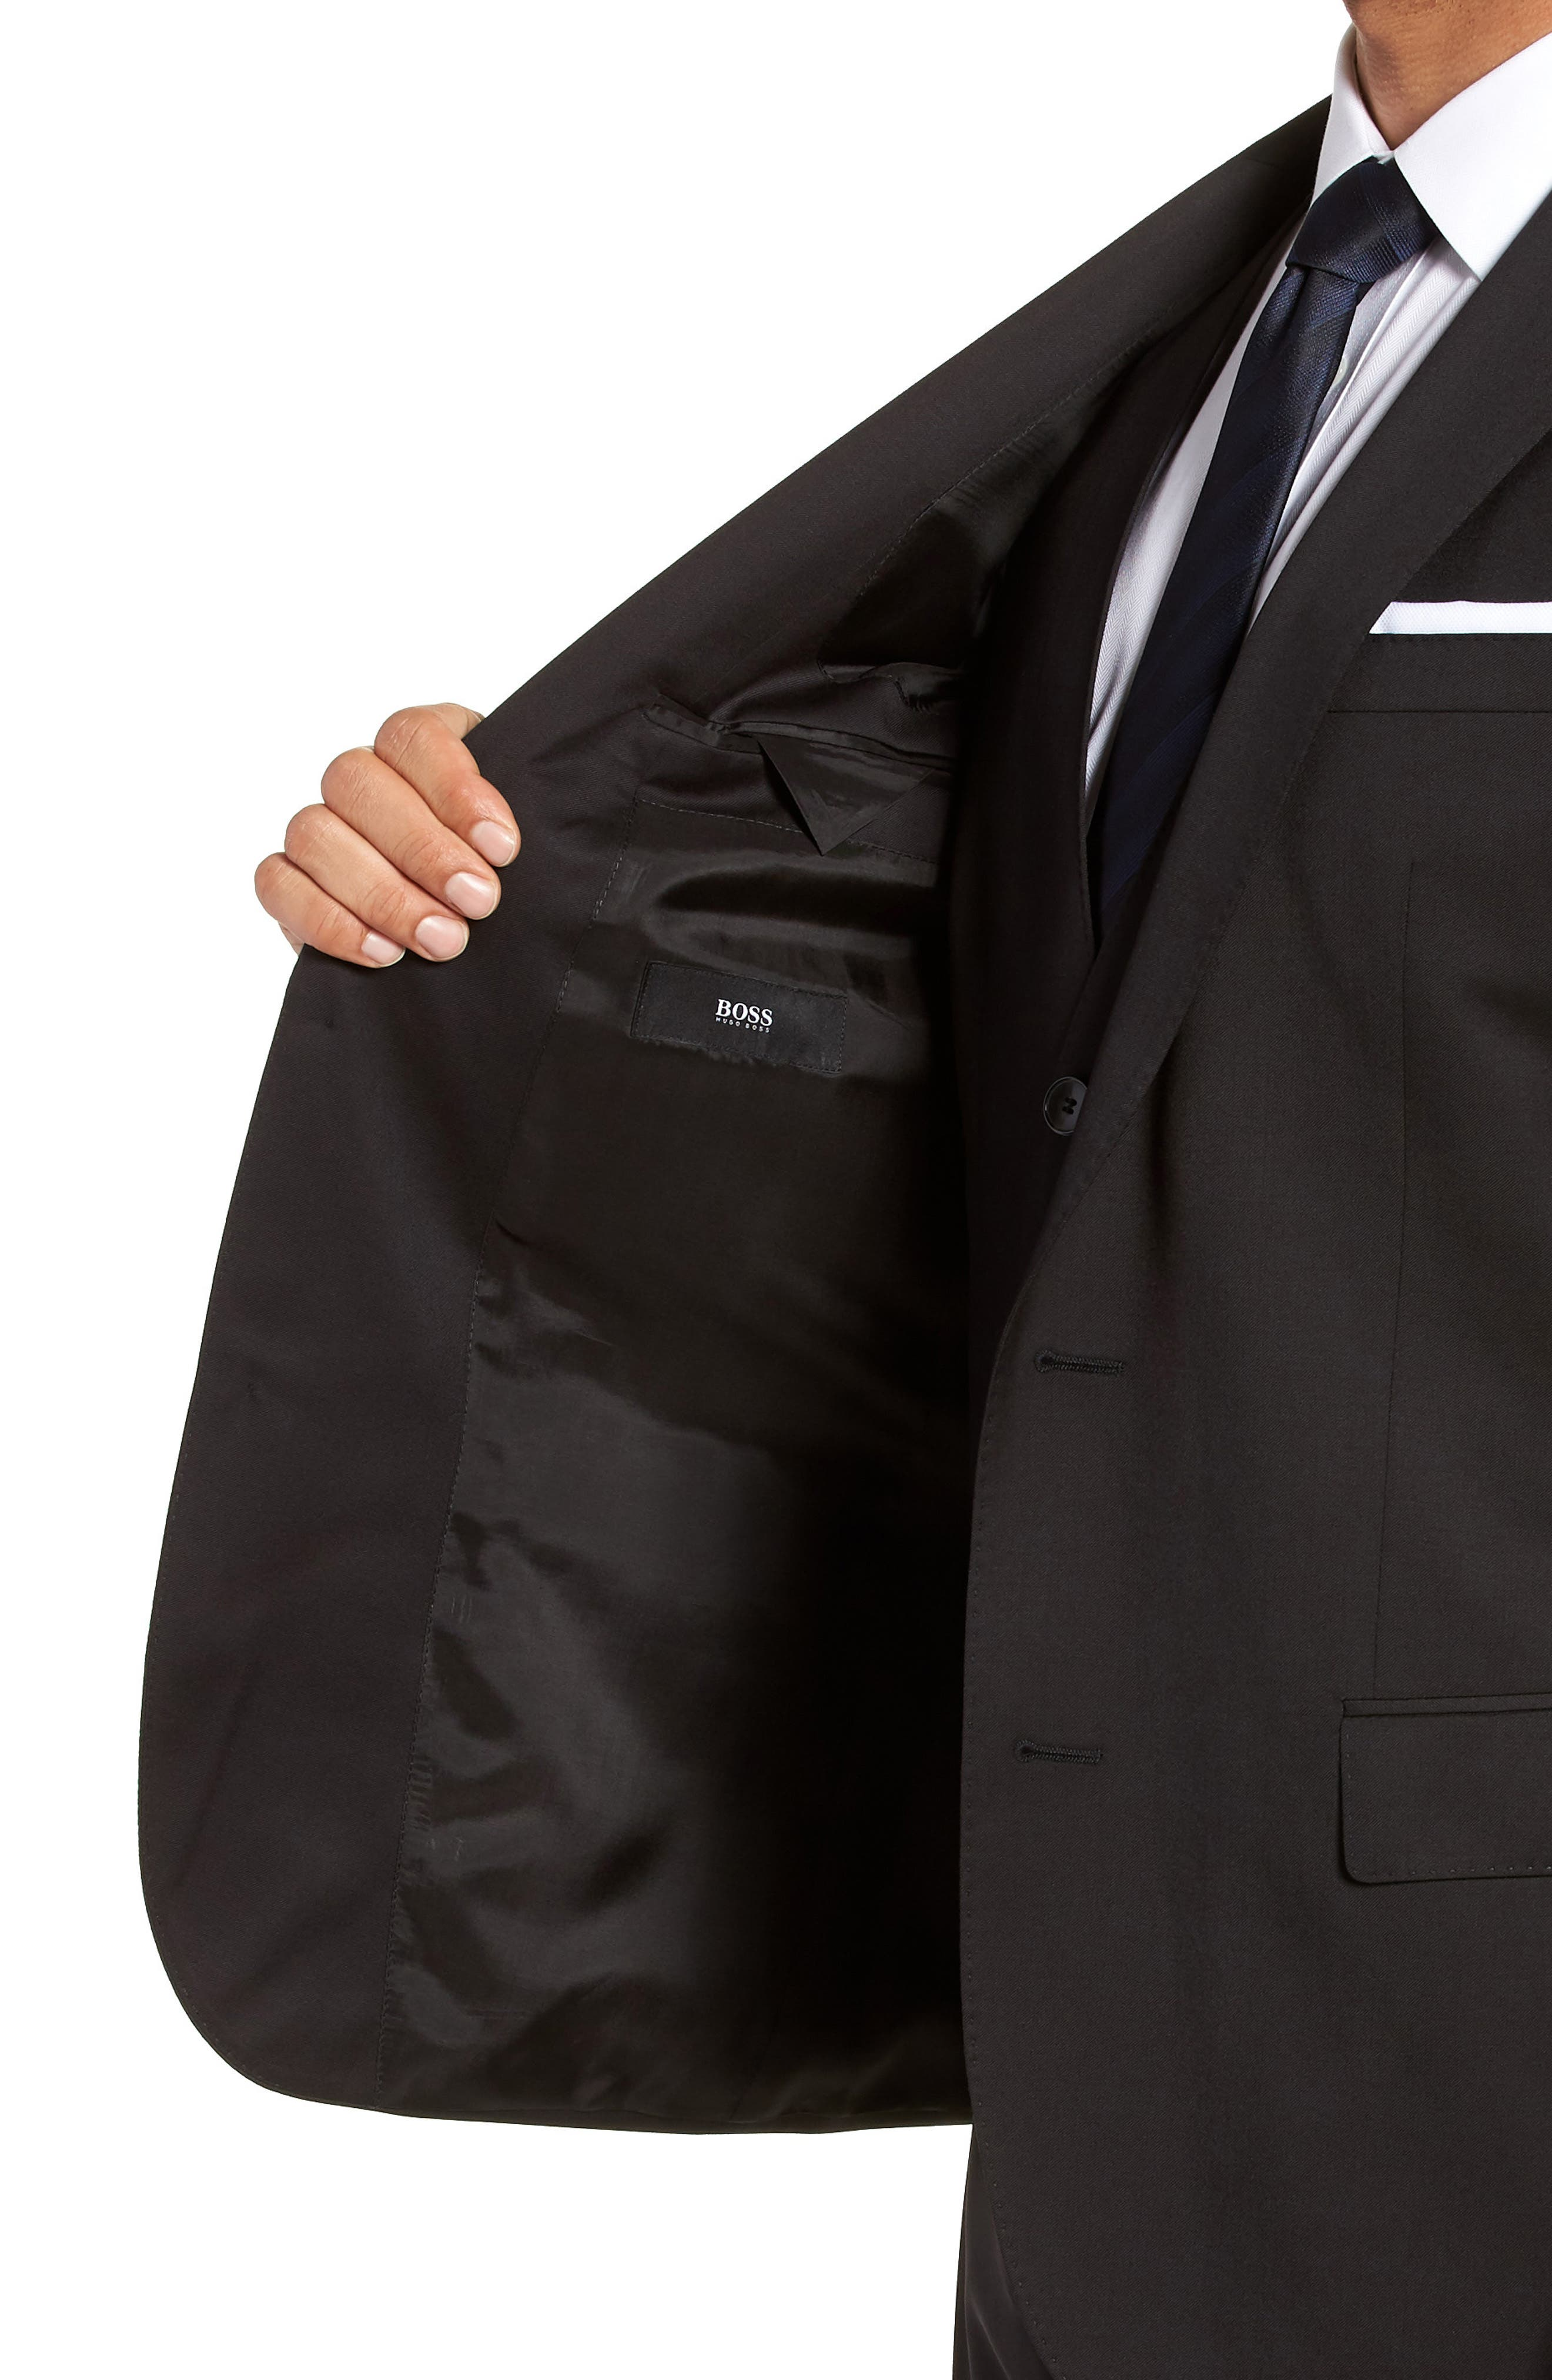 BOSS, Hayes CYL Slim Fit Solid Wool Sport Coat, Alternate thumbnail 4, color, BLACK